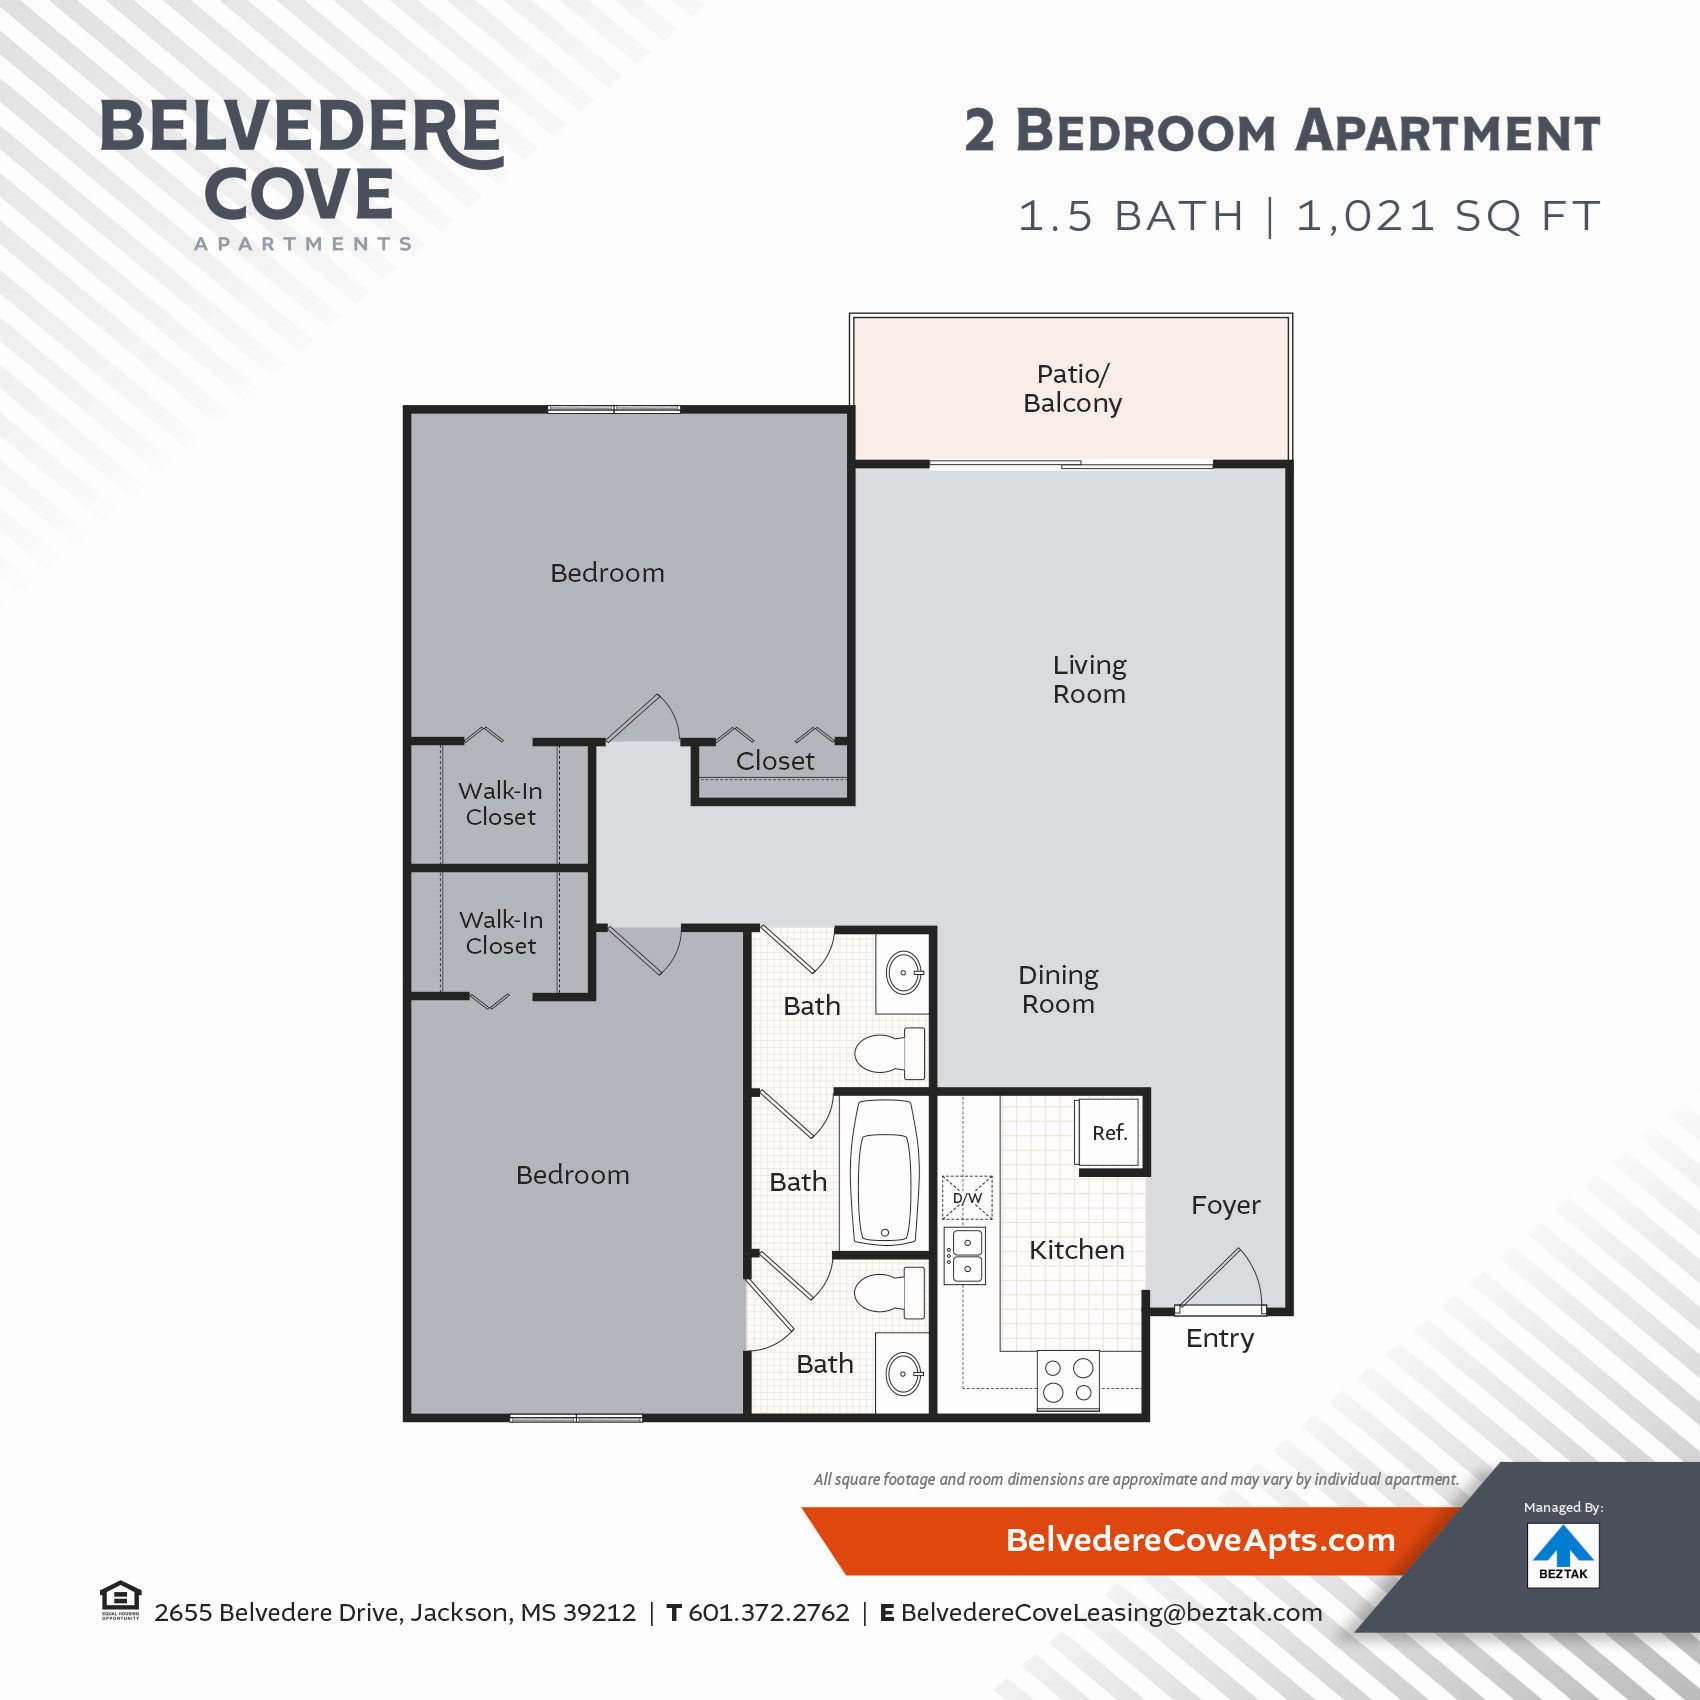 2 Bedroom 1021 Floor Plan at Belvedere Cove Apartments, Jackson, MS, 39212